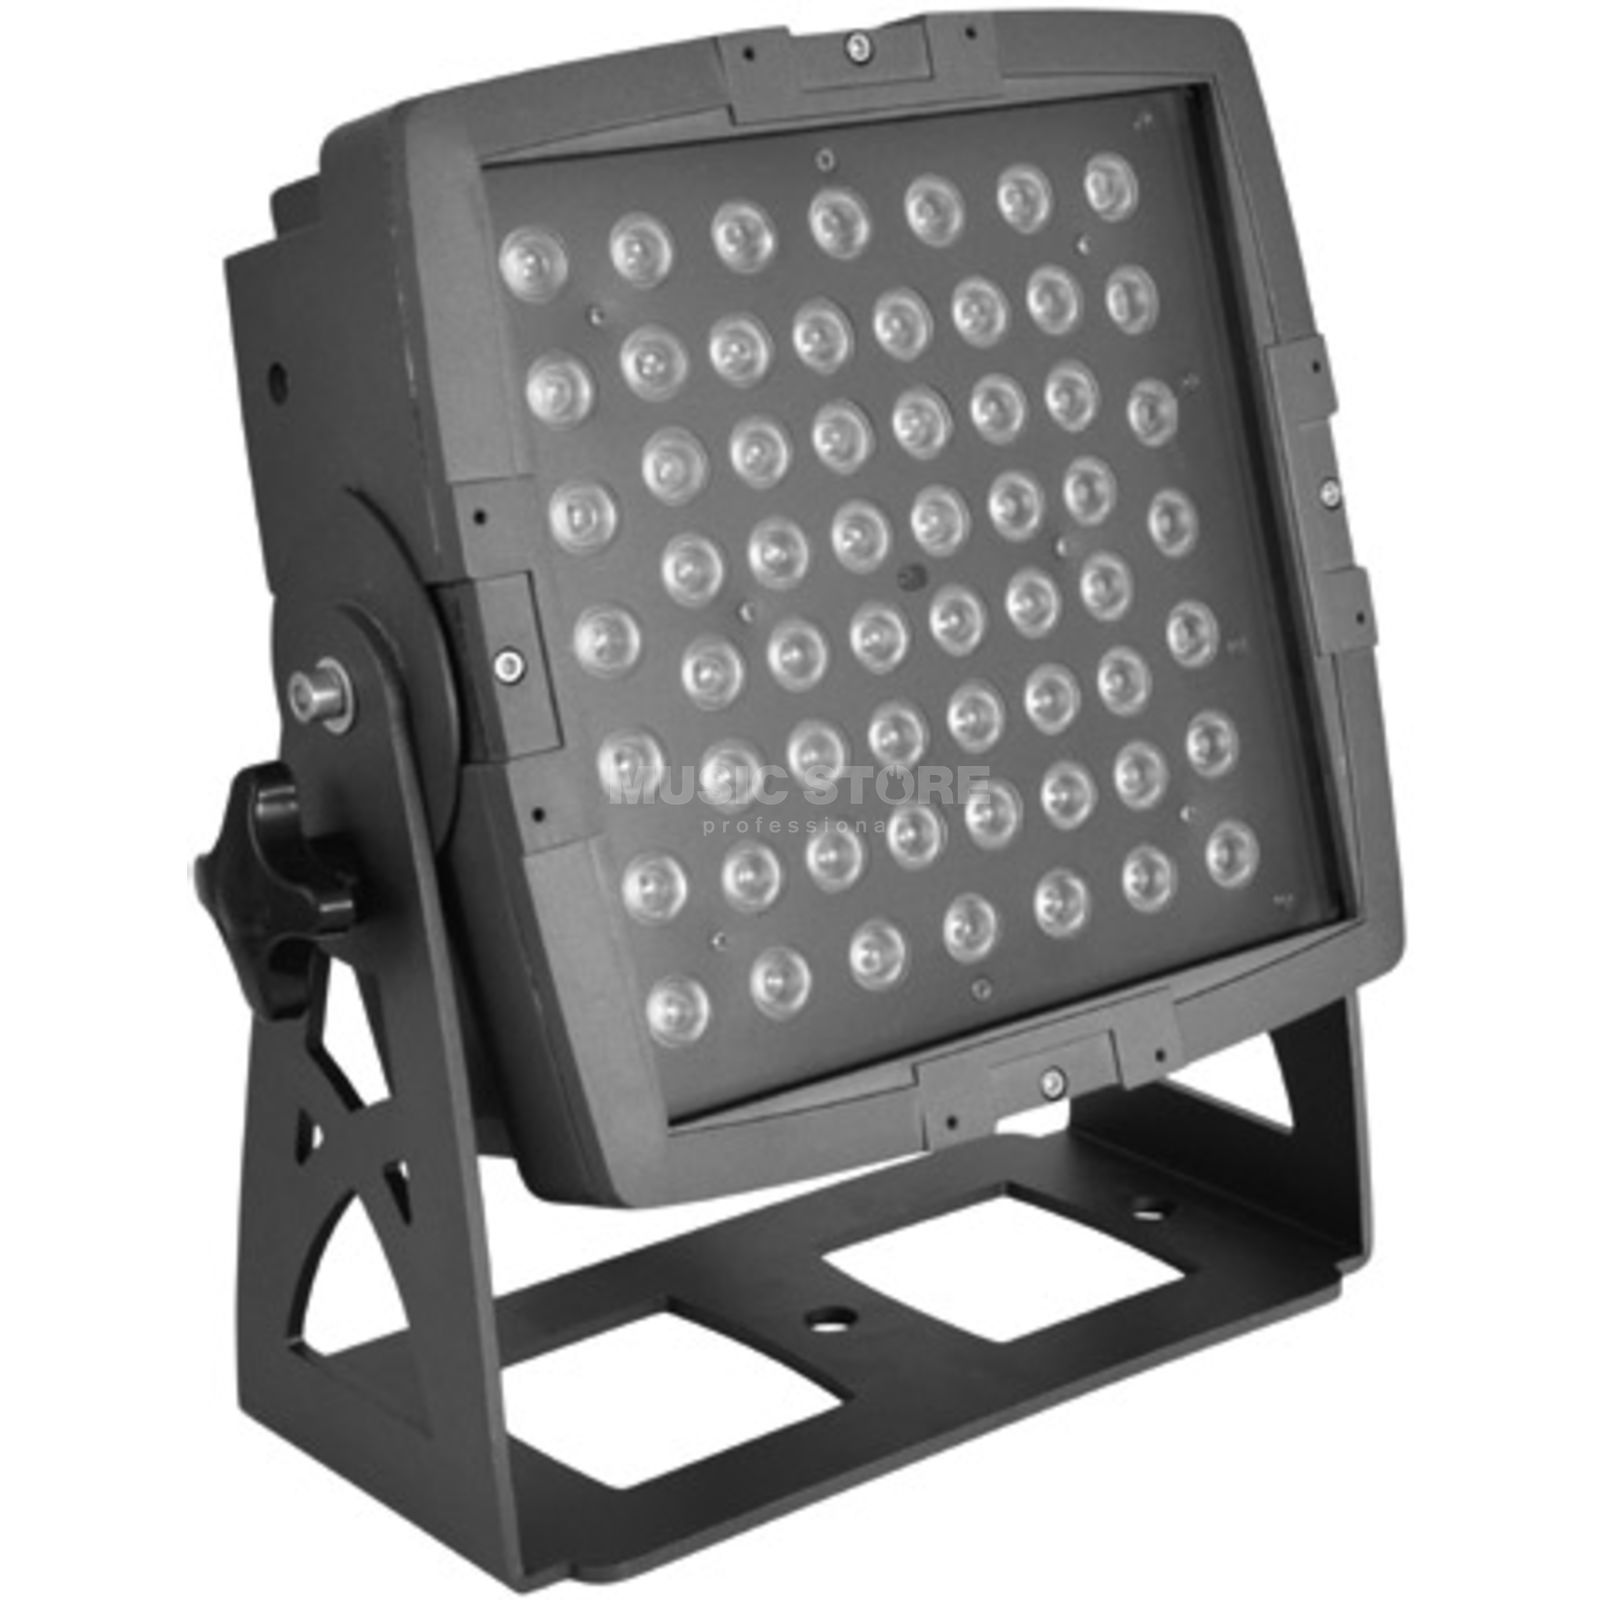 Eurolite LED IP PAD 60x3W CW/WW Architektur-Schweinwerfer IP65 Produktbild